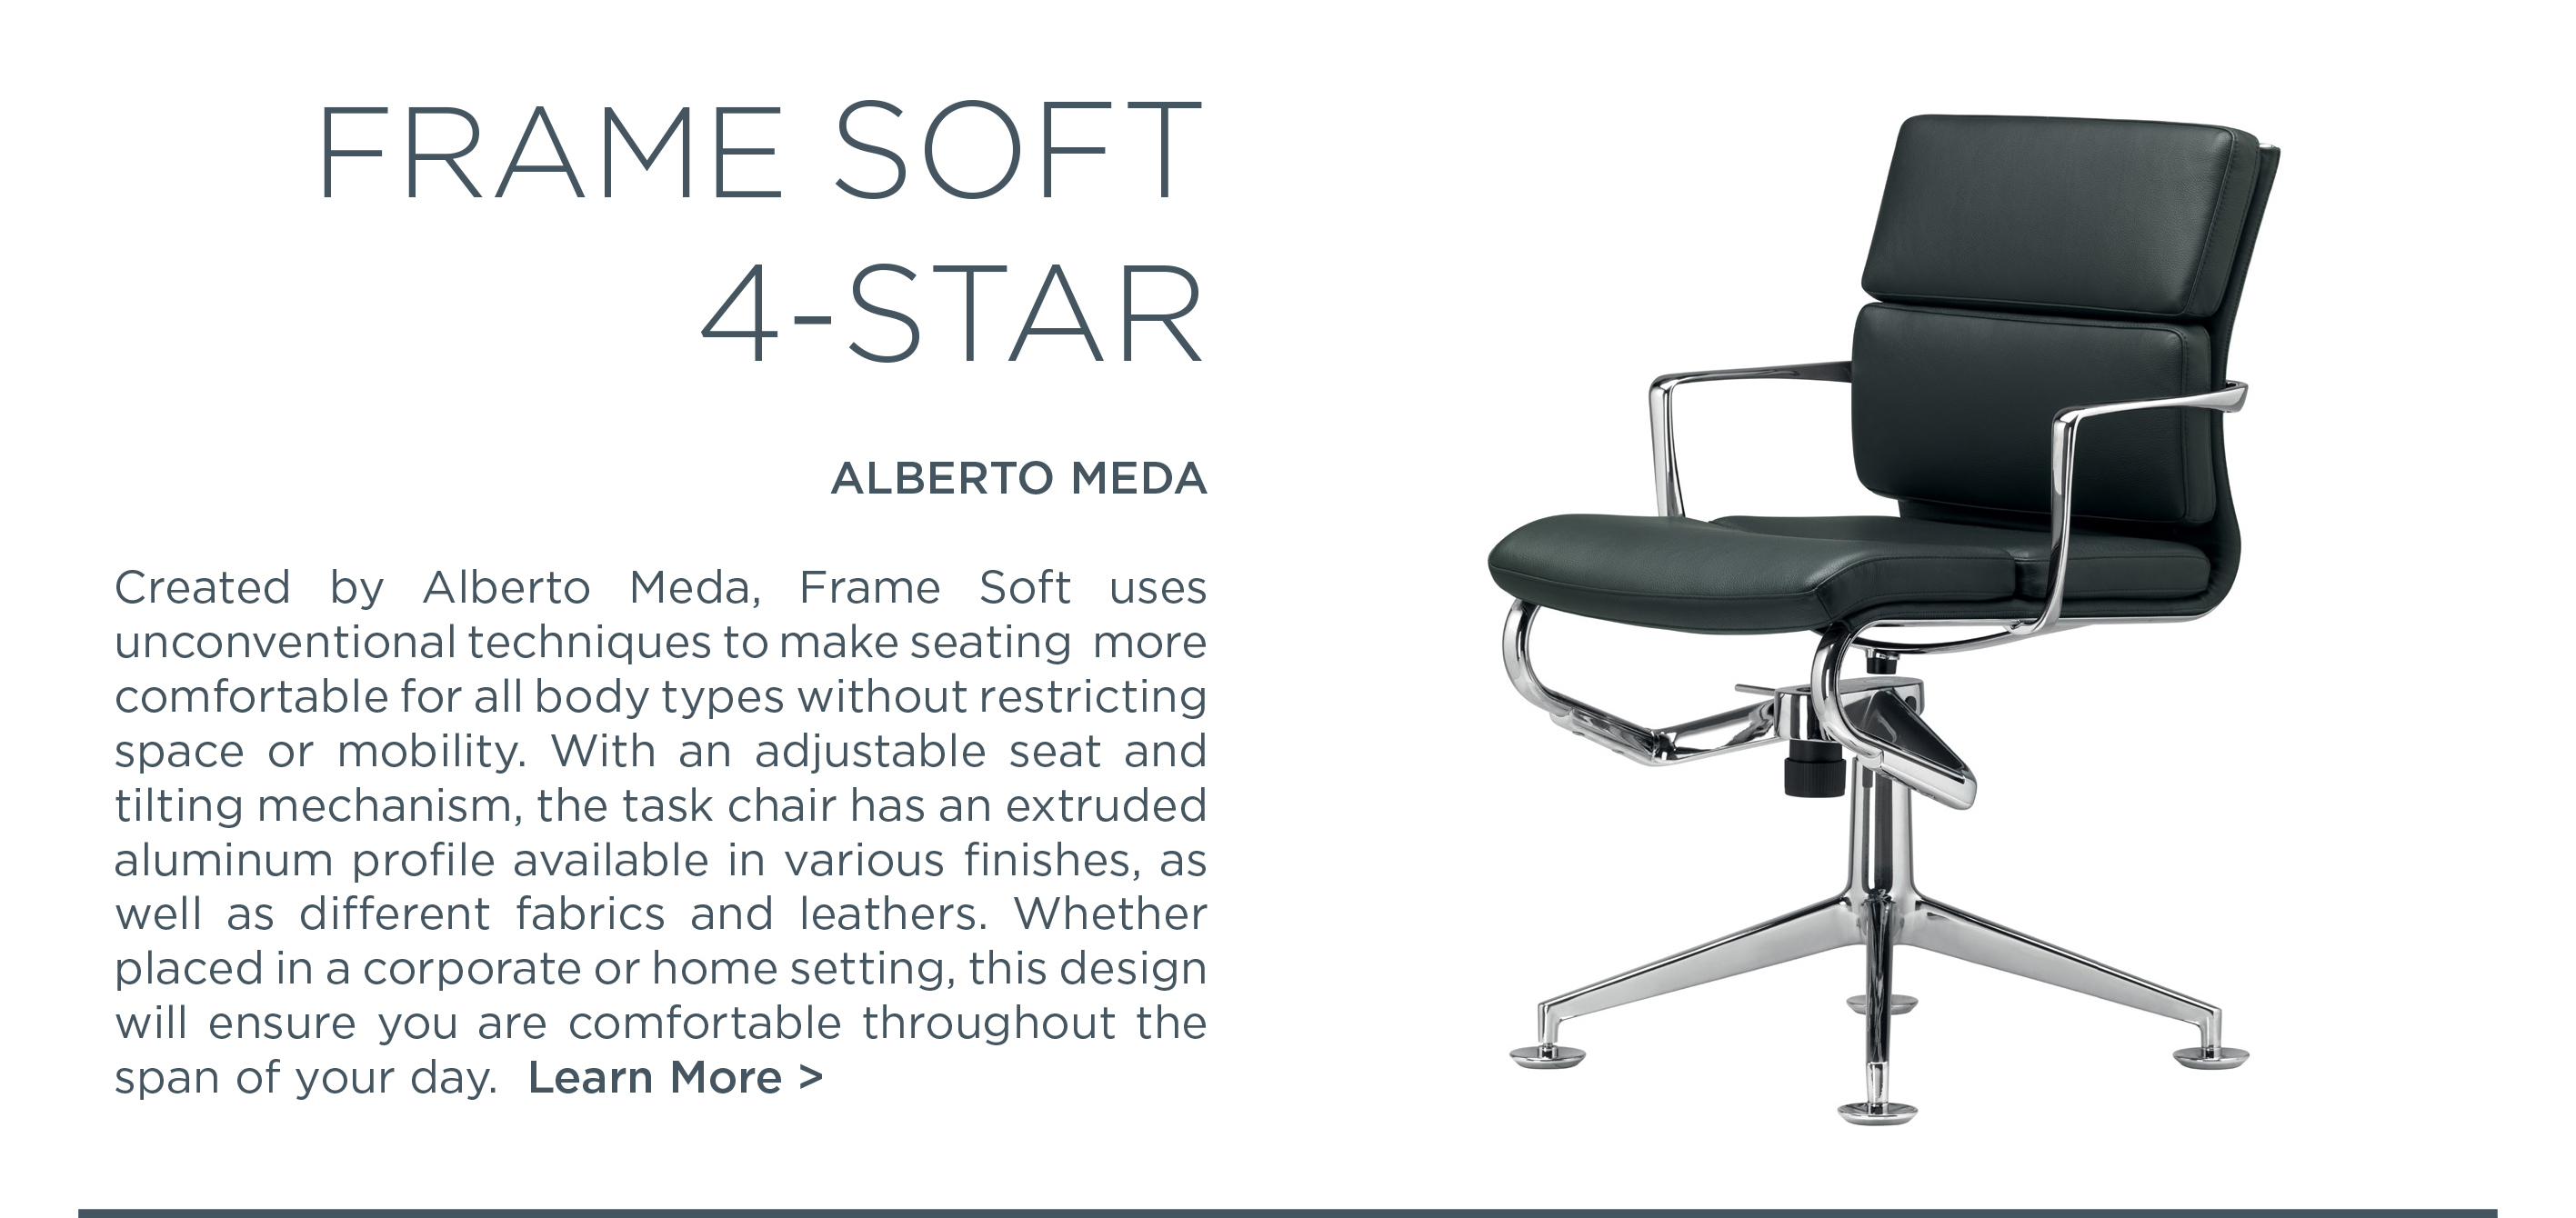 frame soft alberto meda alias suite ny suite new york